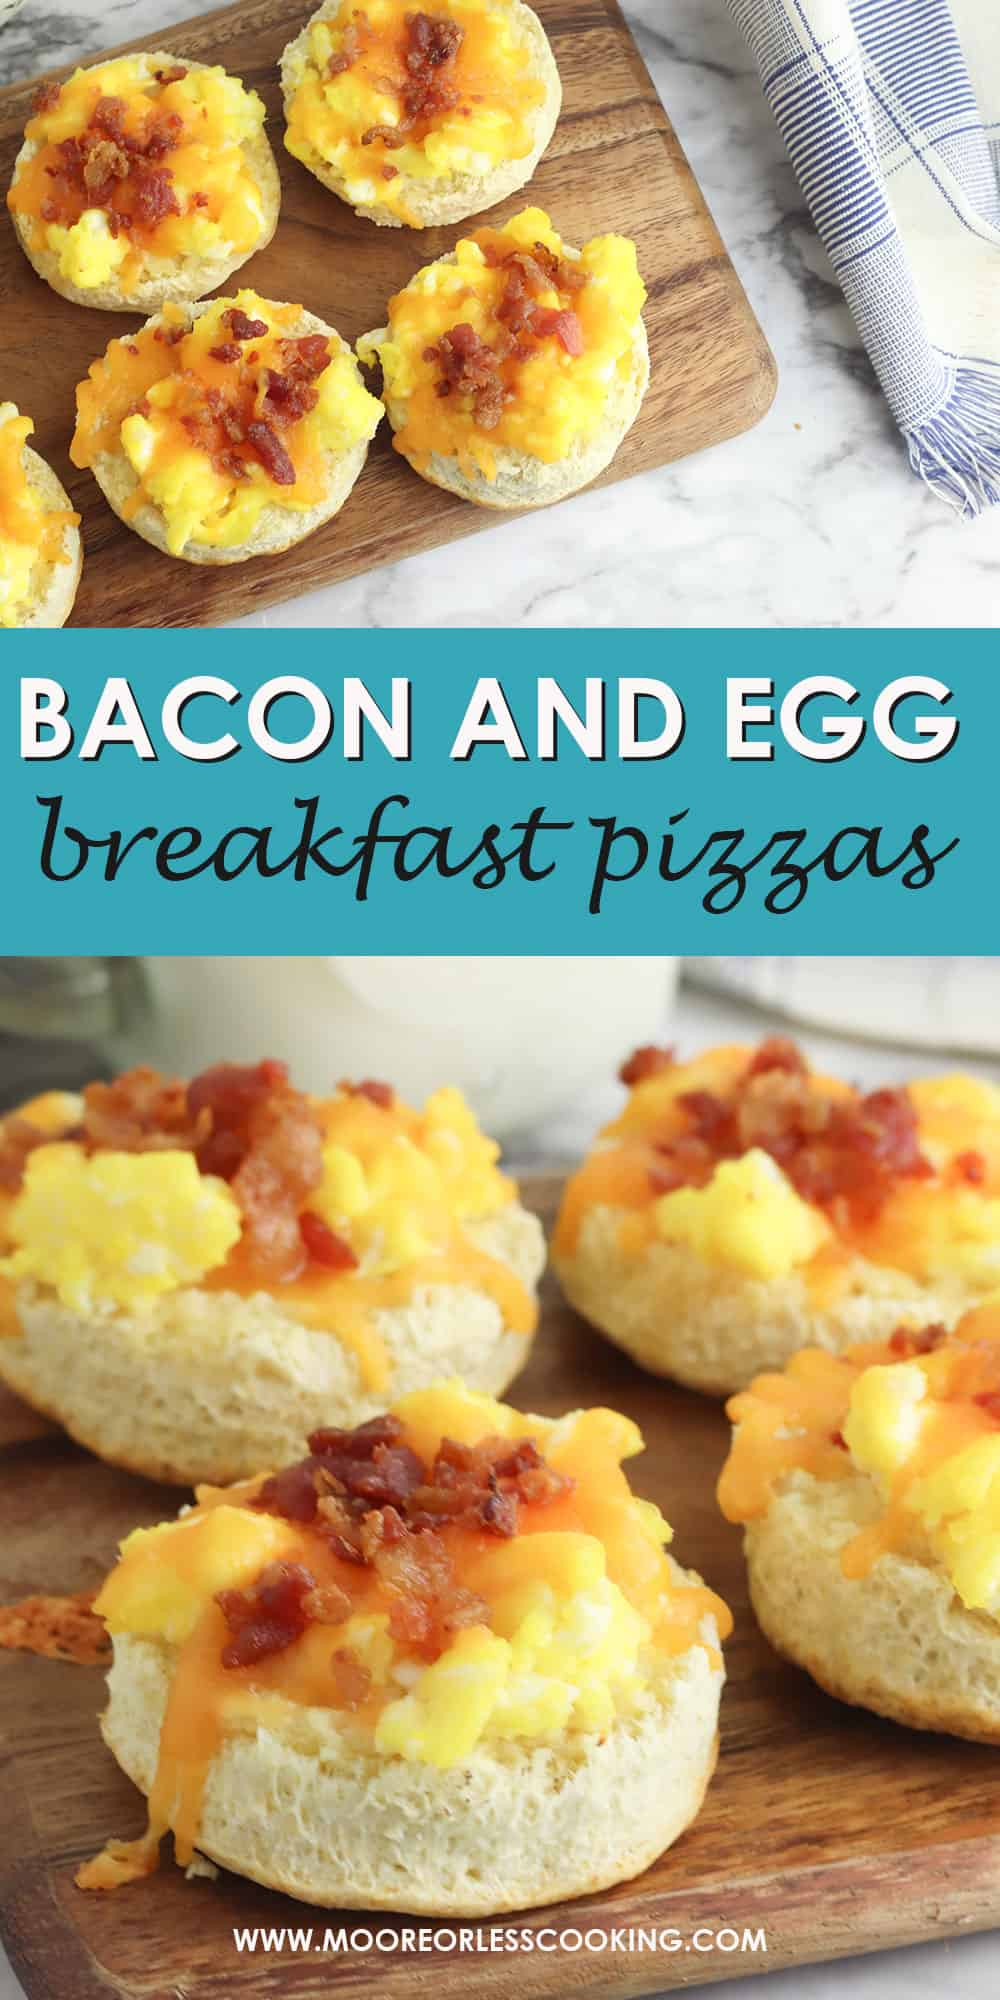 These simple breakfast pizzas are guaranteed to be popular with everyone at home because they can easily be adapted to different tastes. To make these breakfast pizzas you'll need five basic ingredients. via @Mooreorlesscook